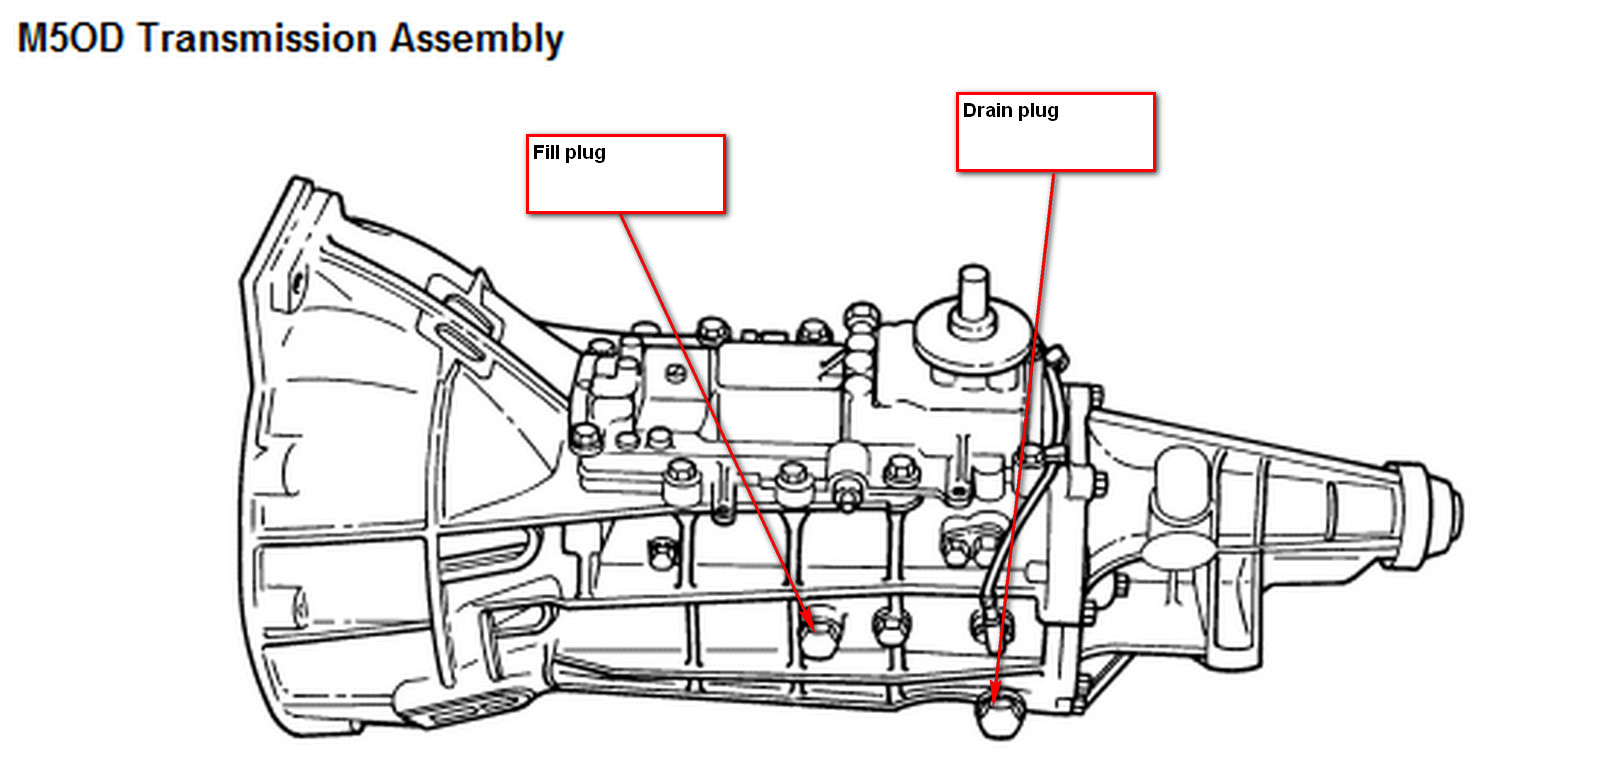 3 1l Camshaft Position Sensor Location besides Chevrolet 4 3l V6 Engine Diagram also Ford F 150 1995 Ford F150 95 F150 Pu Turns Over But No Fire together with Toyota T100 Problems in addition 2006 Volvo S40 Fuse Box Location. on knock sensor location 1993 volvo